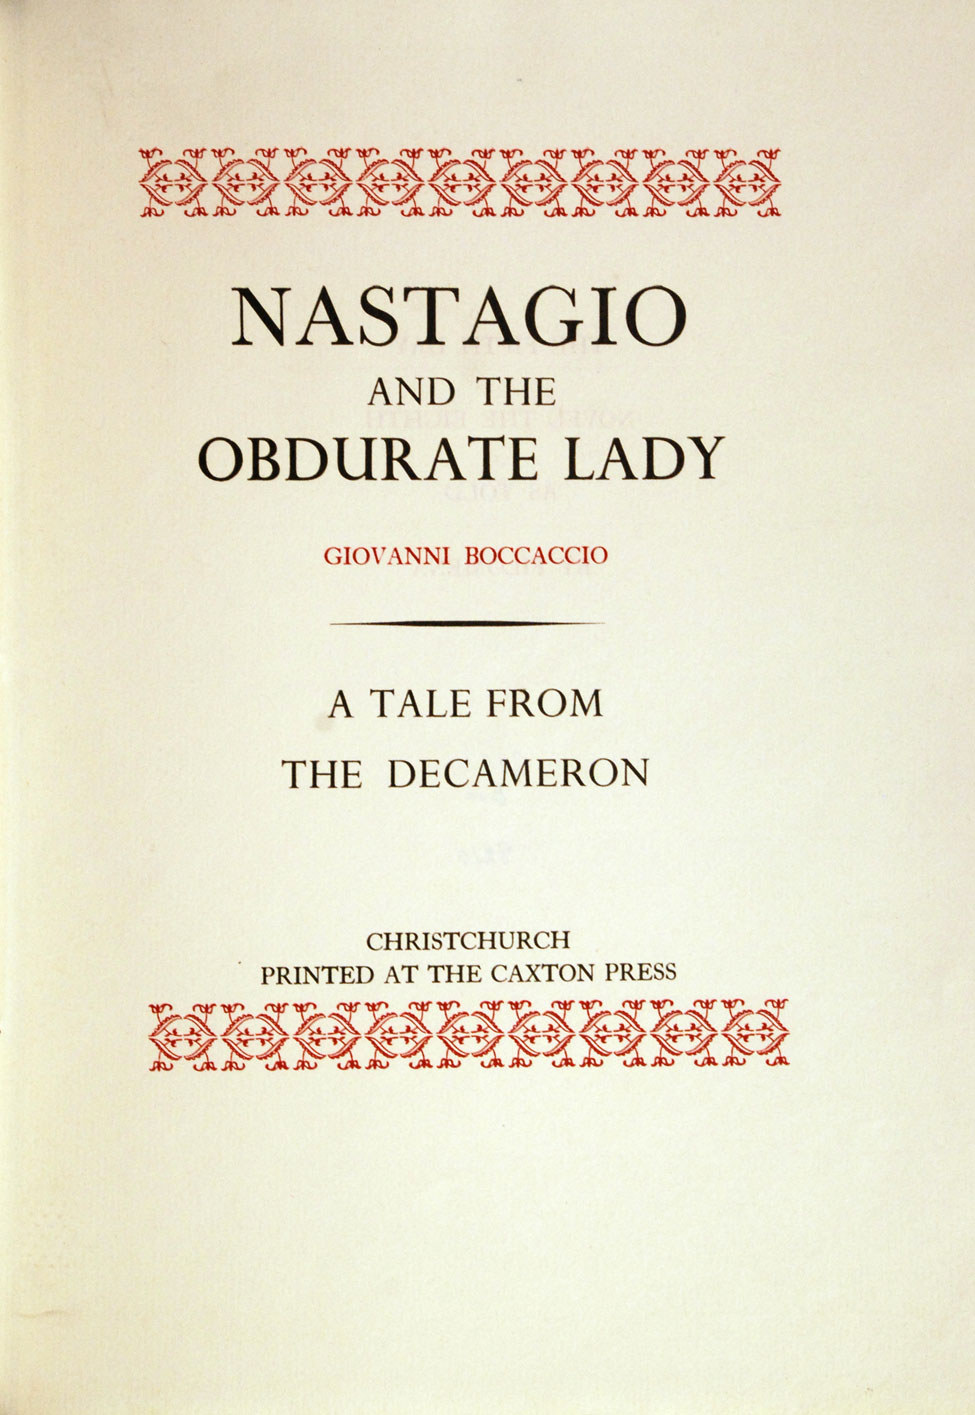 Giovanni Boccaccio. Nastagio and the Obdurate Lady: A Tale from the Decameron. <i>Christchurch: The Caxton Press, 1940.</i>